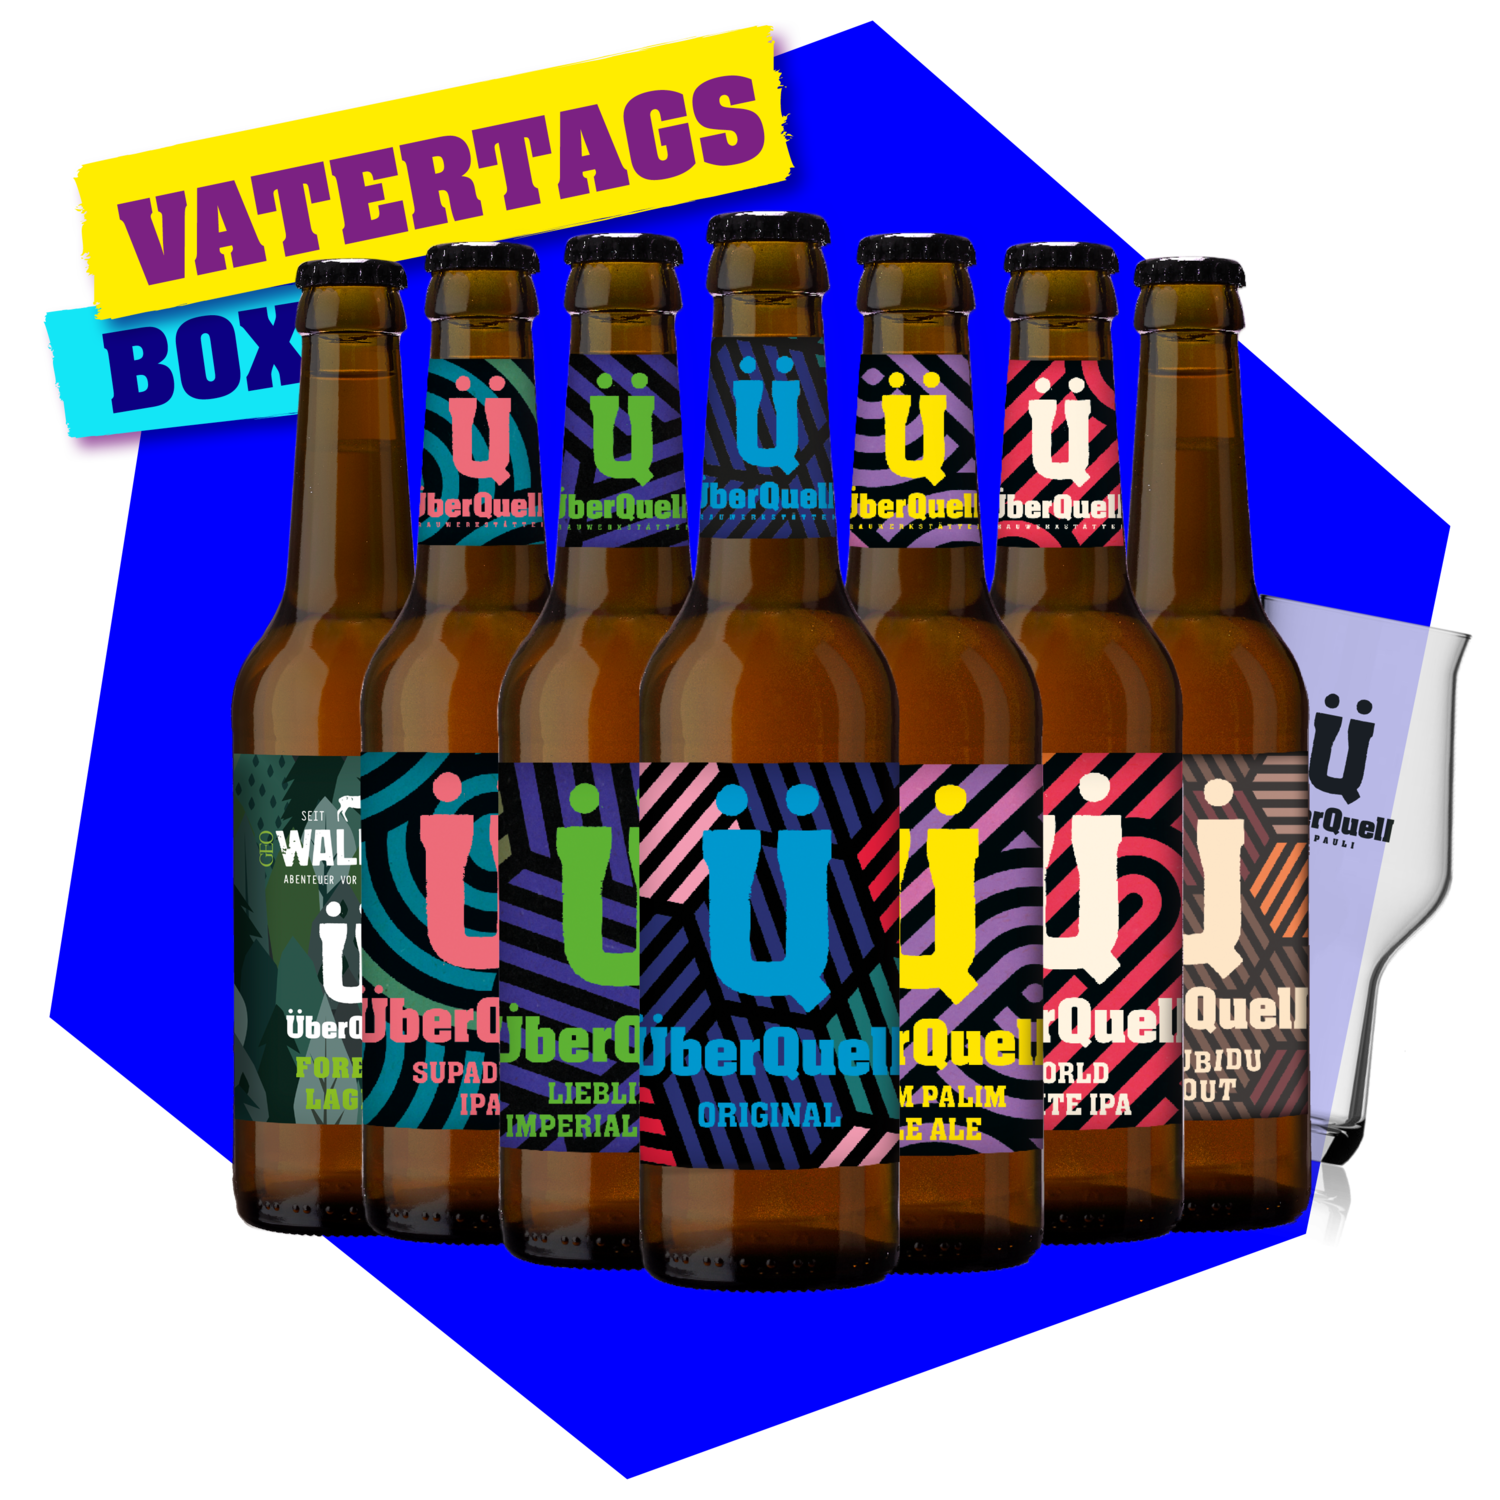 Vatertags-Box